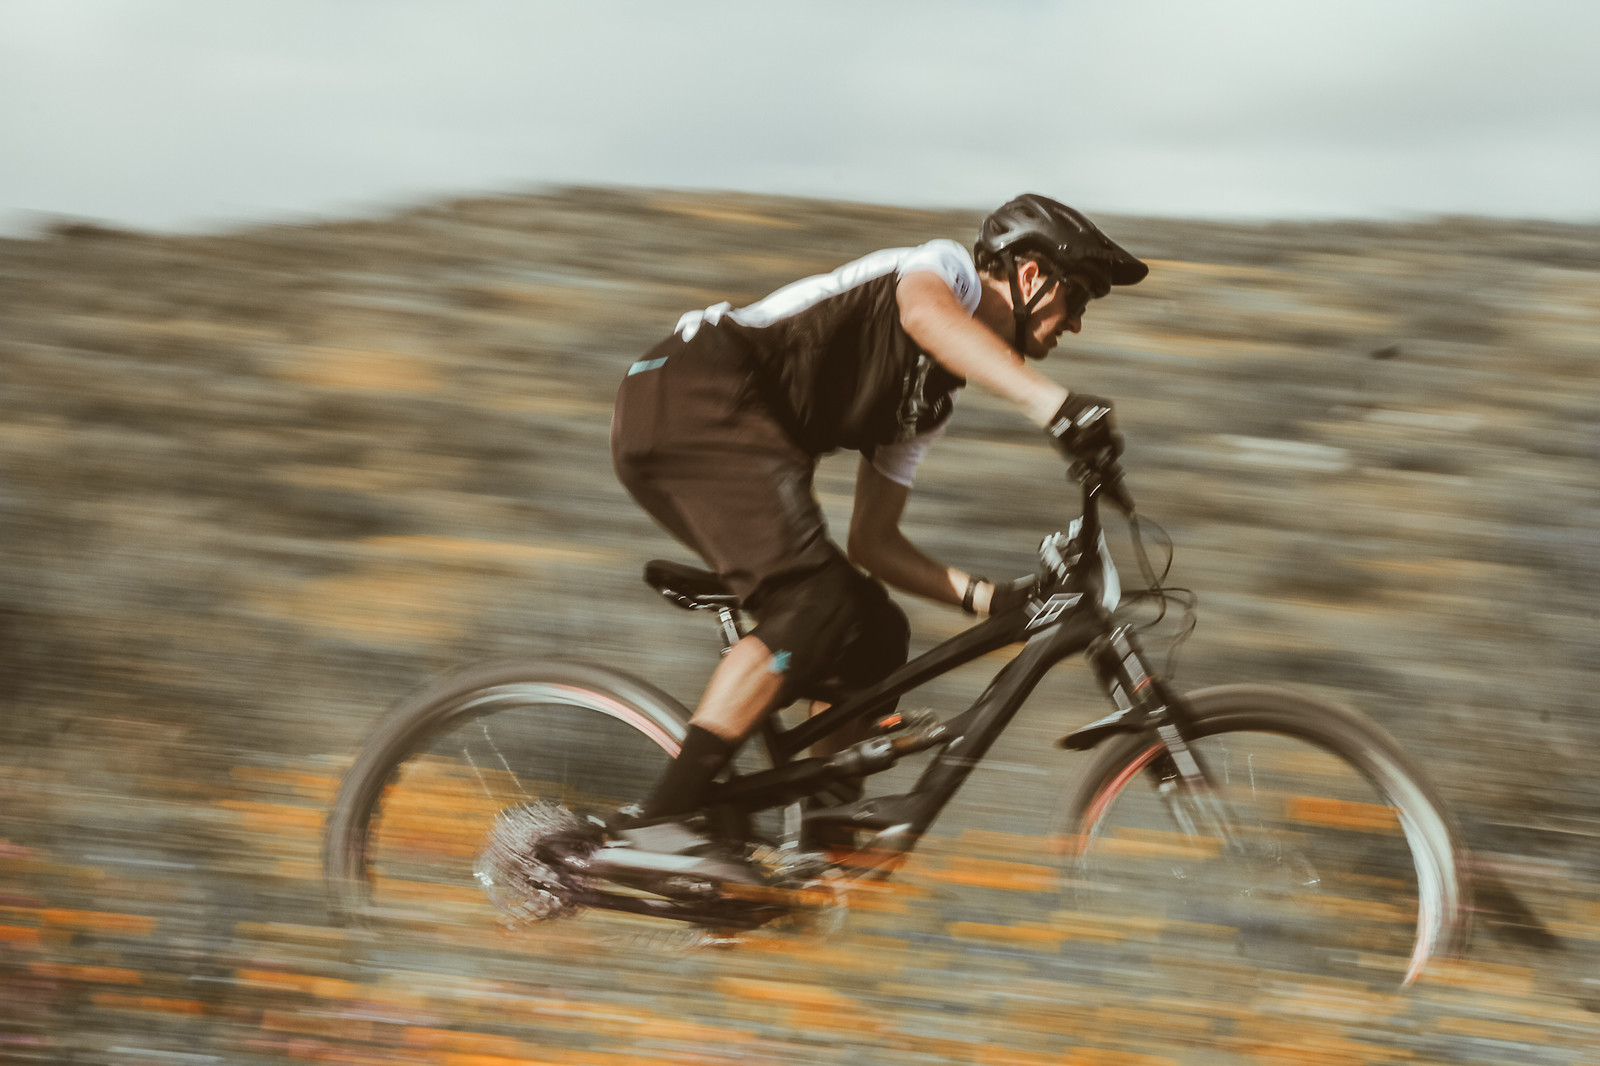 IMG 2327-2 - Liam Donohue - Mountain Biking Pictures - Vital MTB